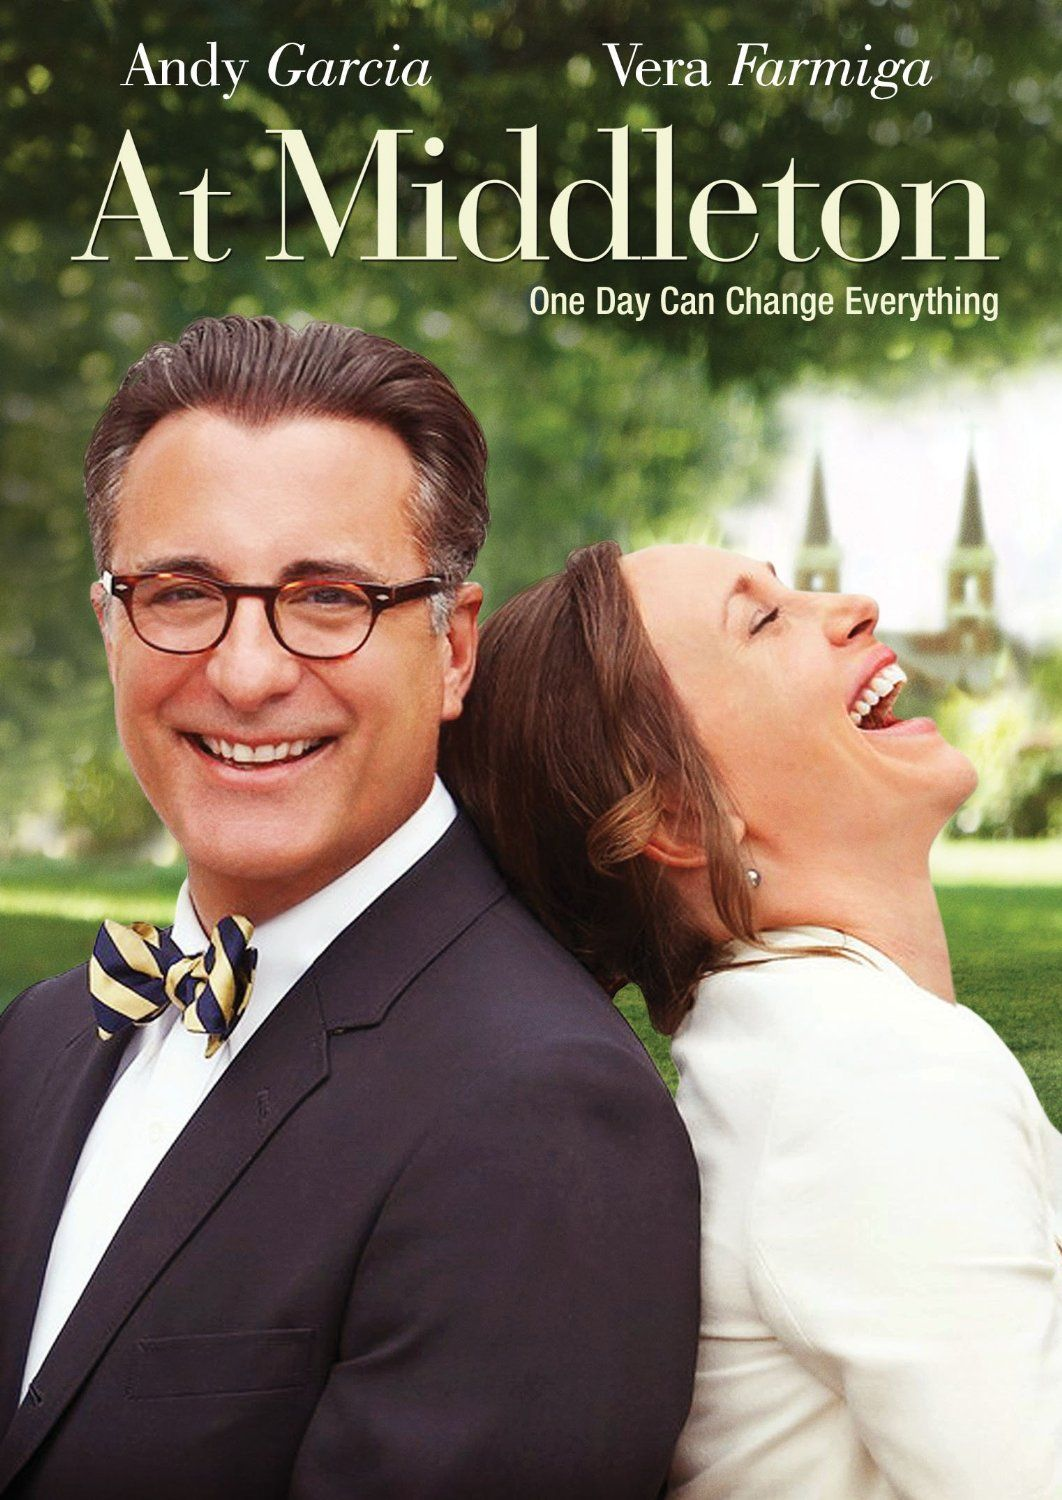 At Middleton Andy Garcia Vera Farmiga Two Parents Meet While Their Kids Are Touring A College Campus Not Your Traditiona Andy Garcia Vera Farmiga Middleton